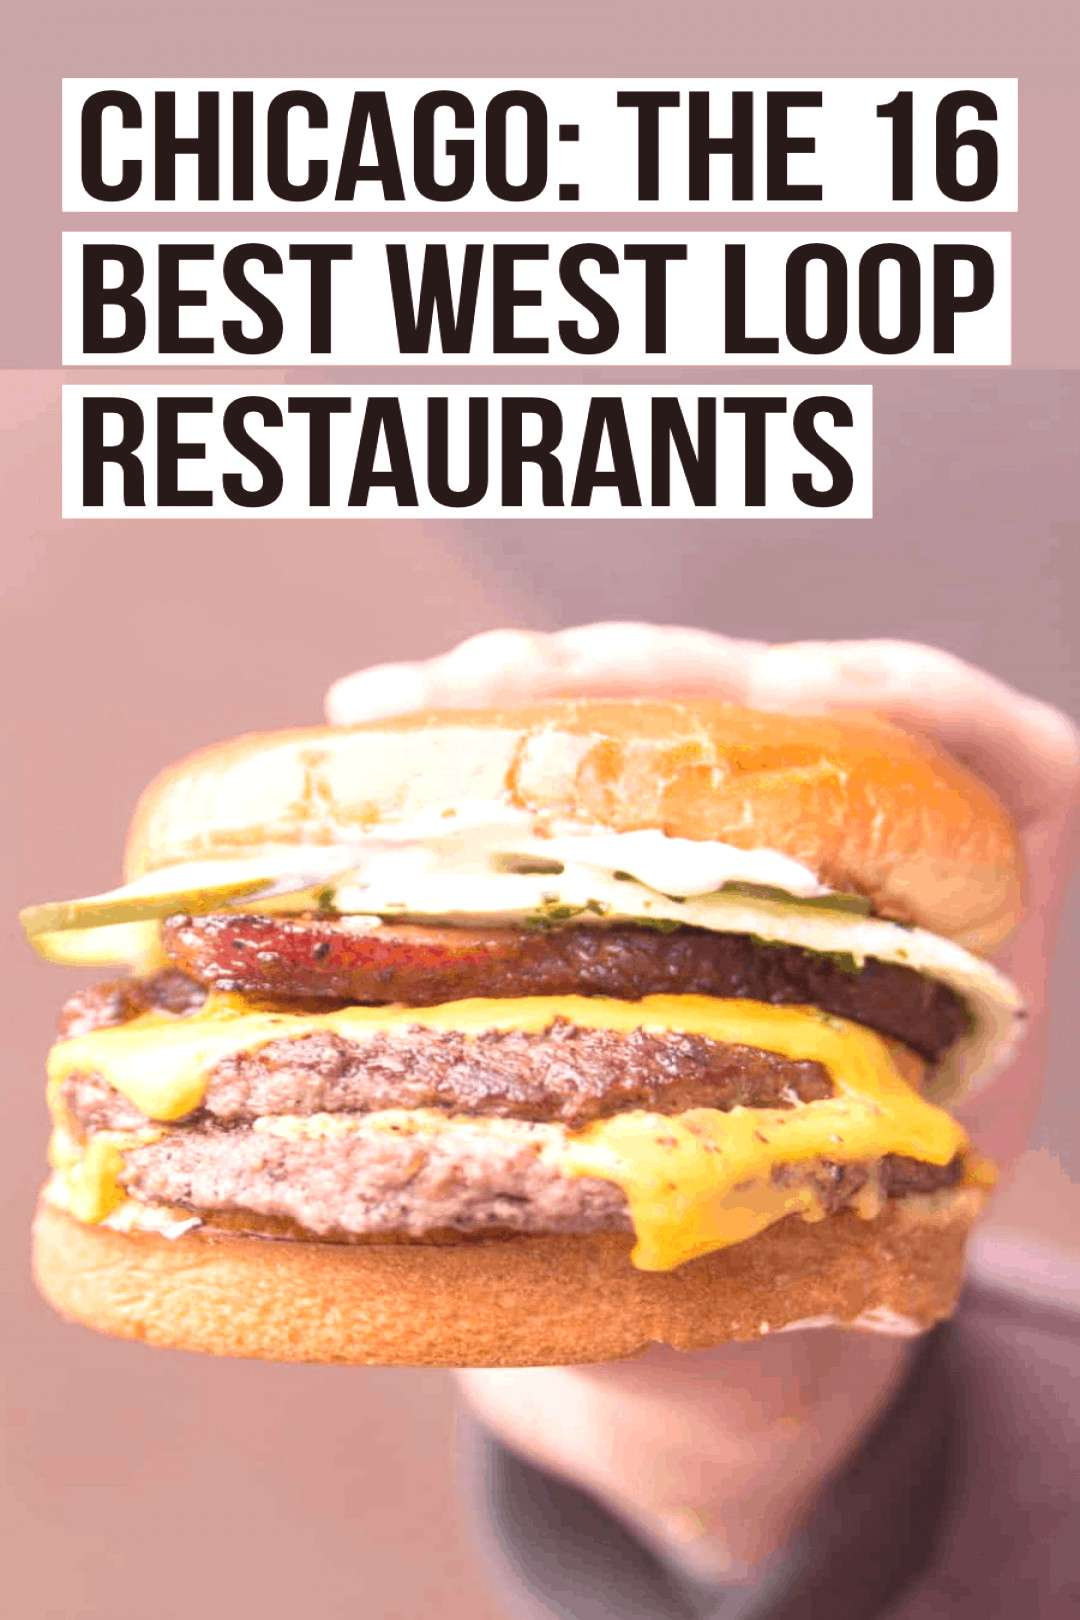 Check out our list of the Top 16 West Loop Chicago Restaurants to know which are worth visiting whe